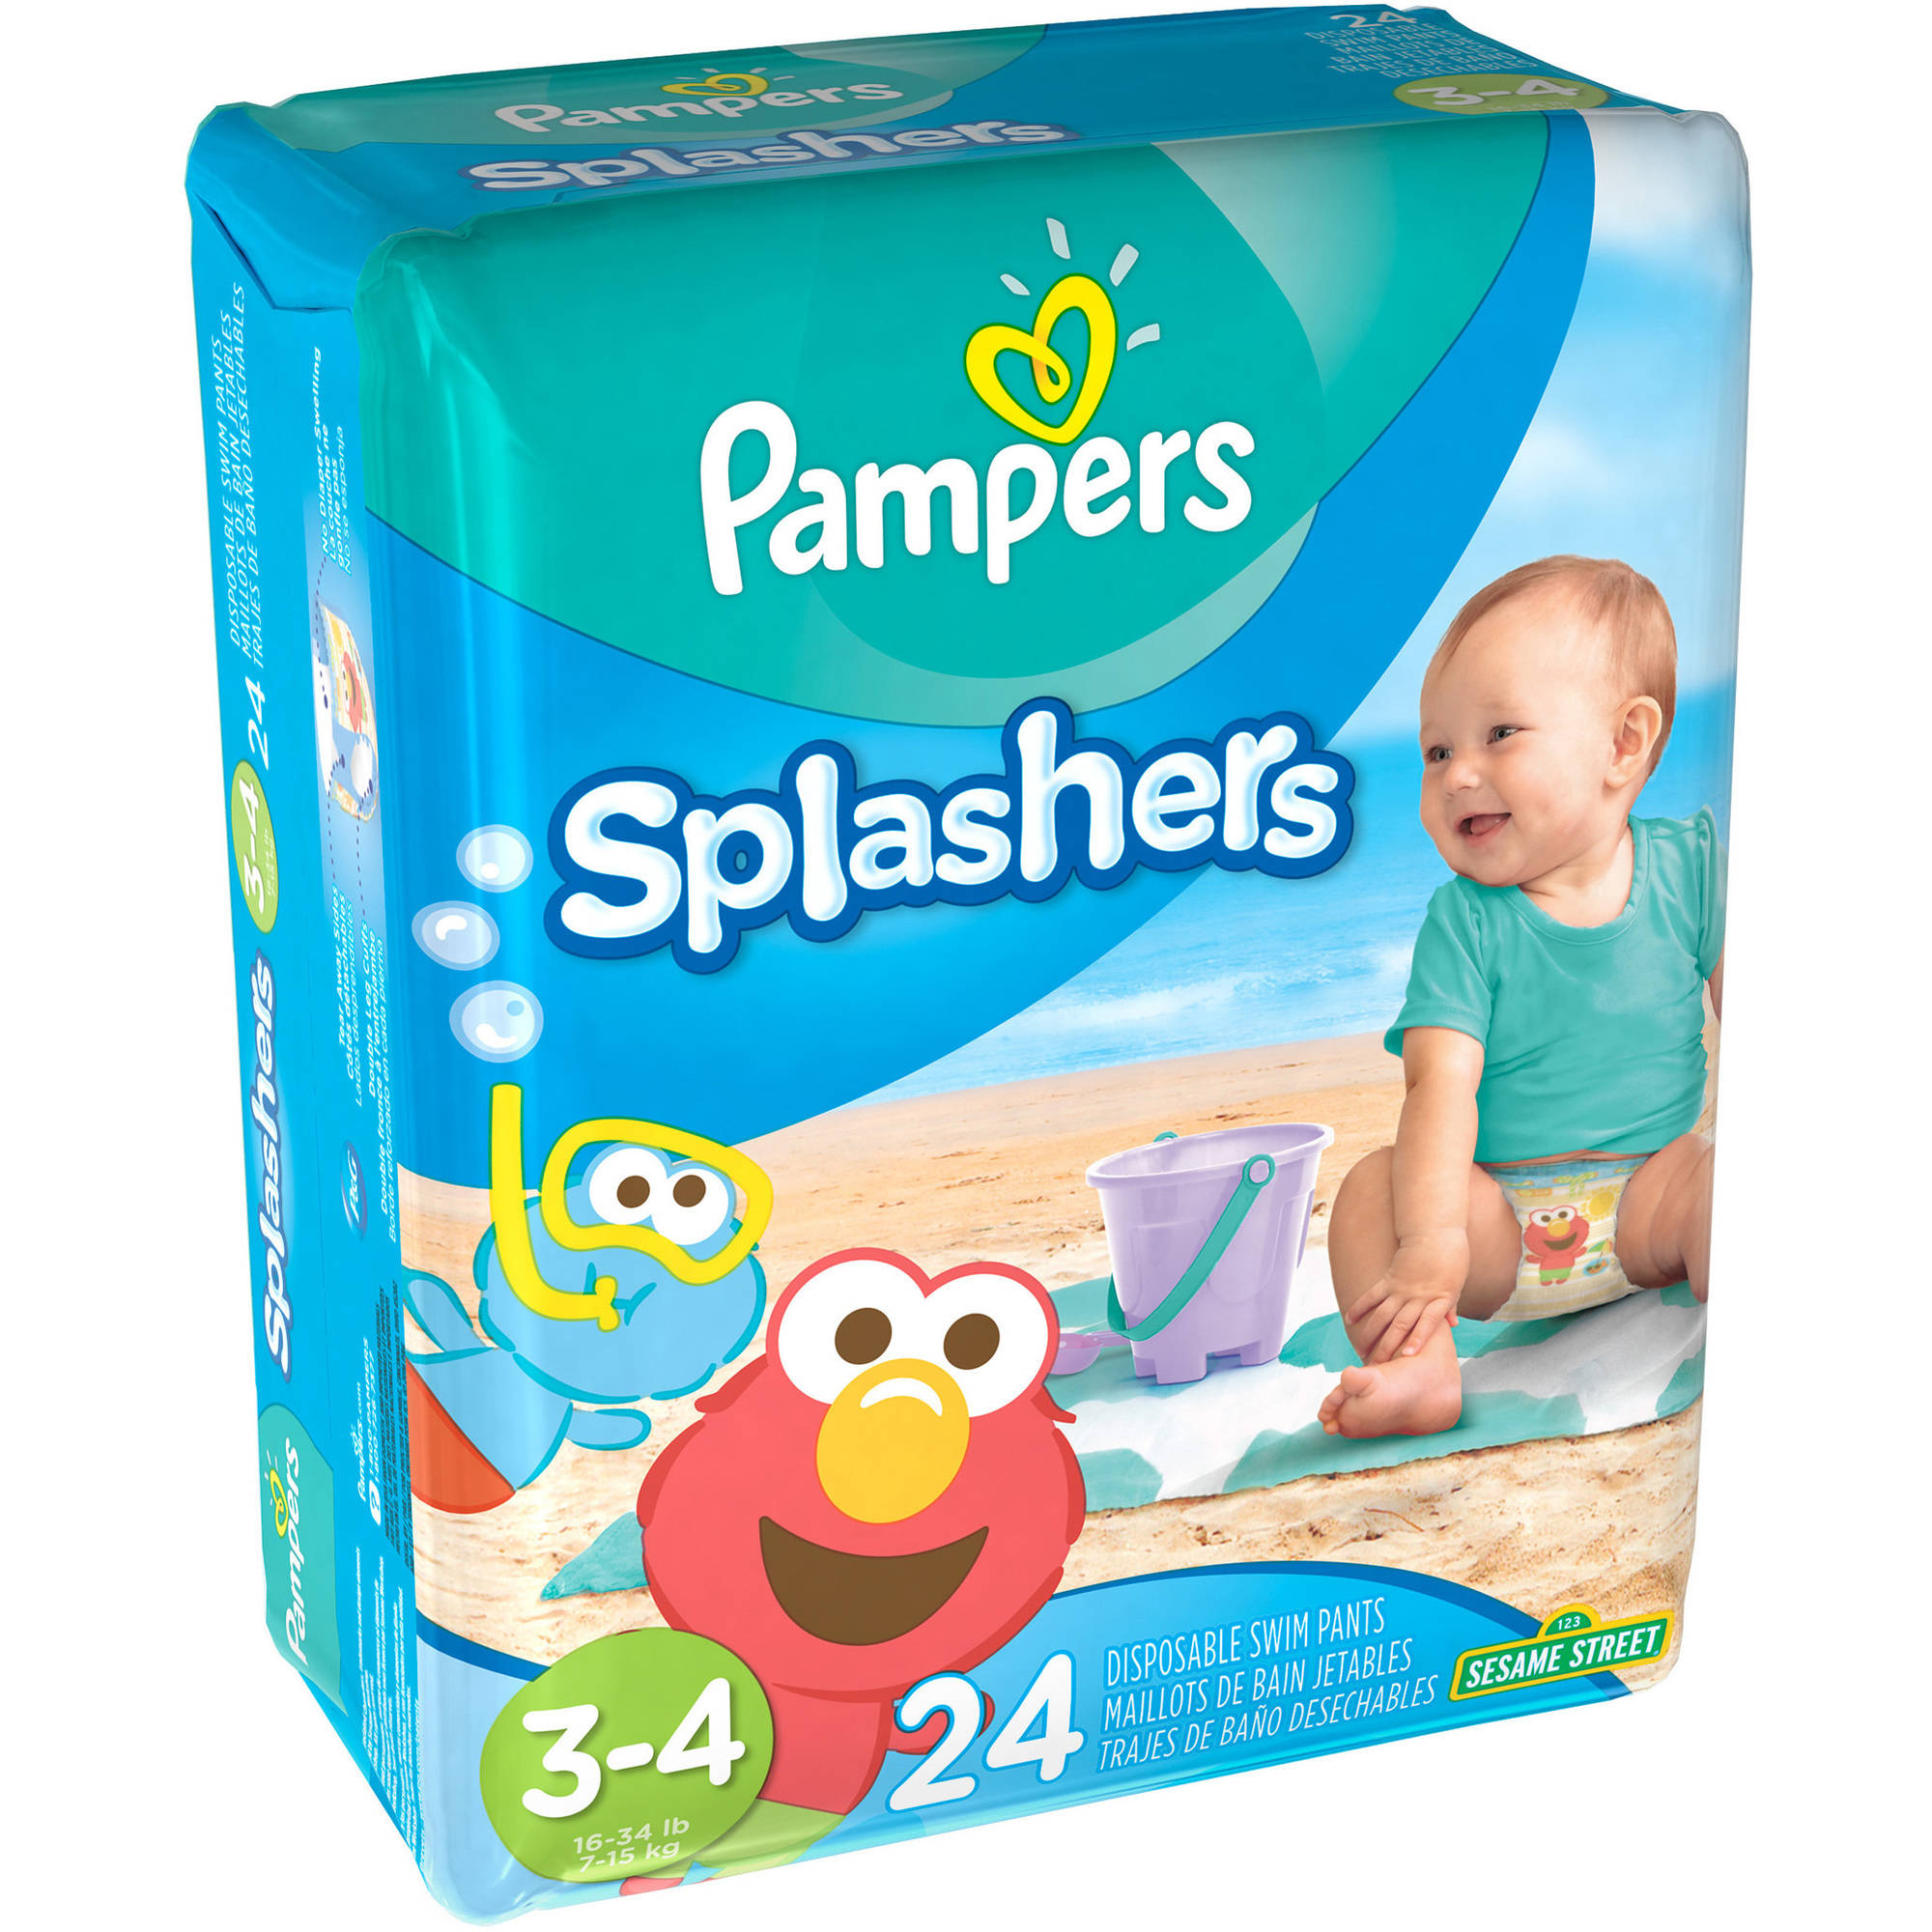 Pampers Splashers Disposable Swim Pants, (Choose Your Size)